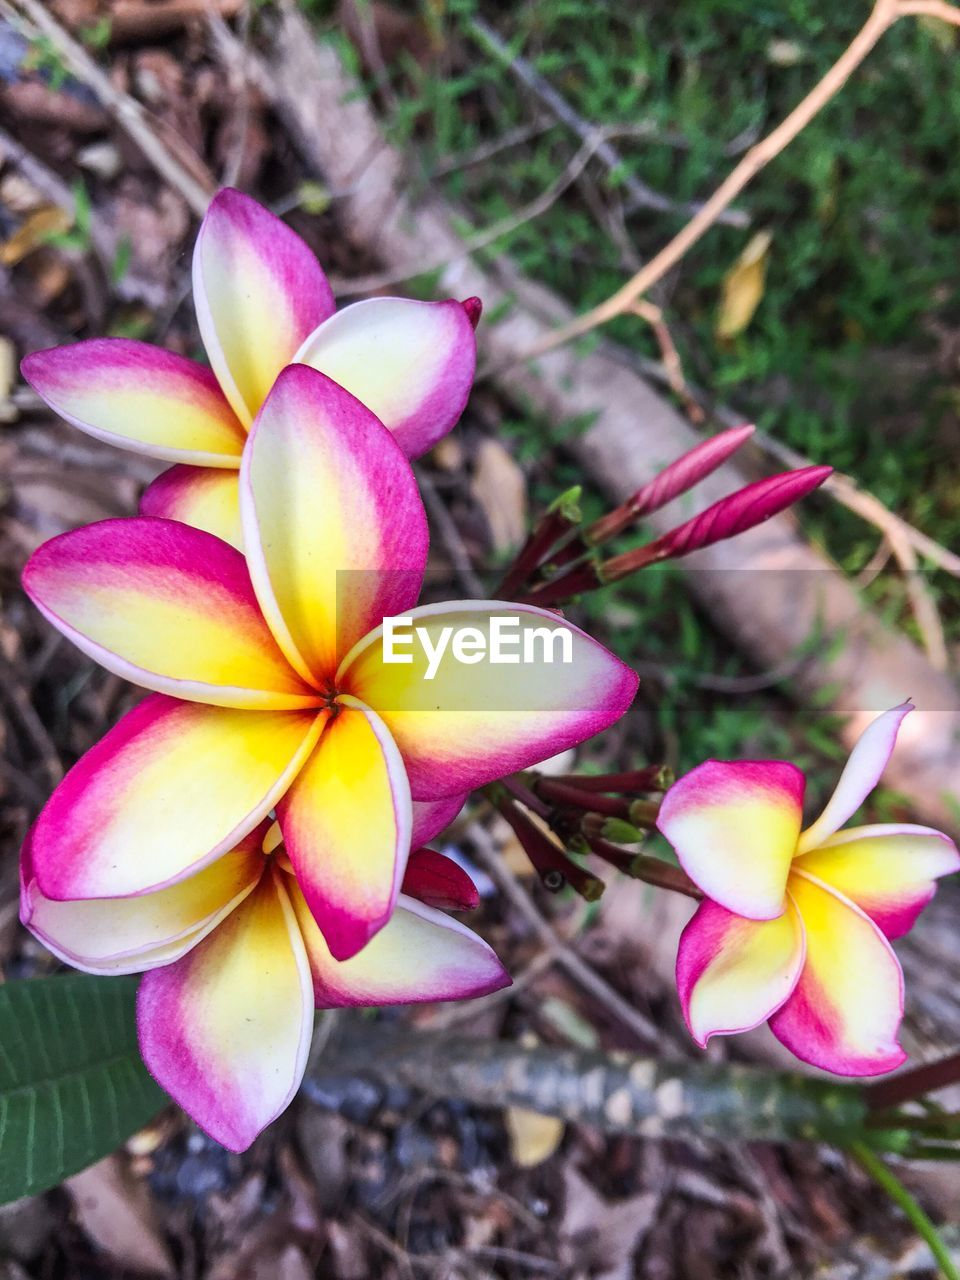 flower, petal, growth, fragility, flower head, beauty in nature, nature, pink color, outdoors, day, close-up, blooming, freshness, plant, frangipani, no people